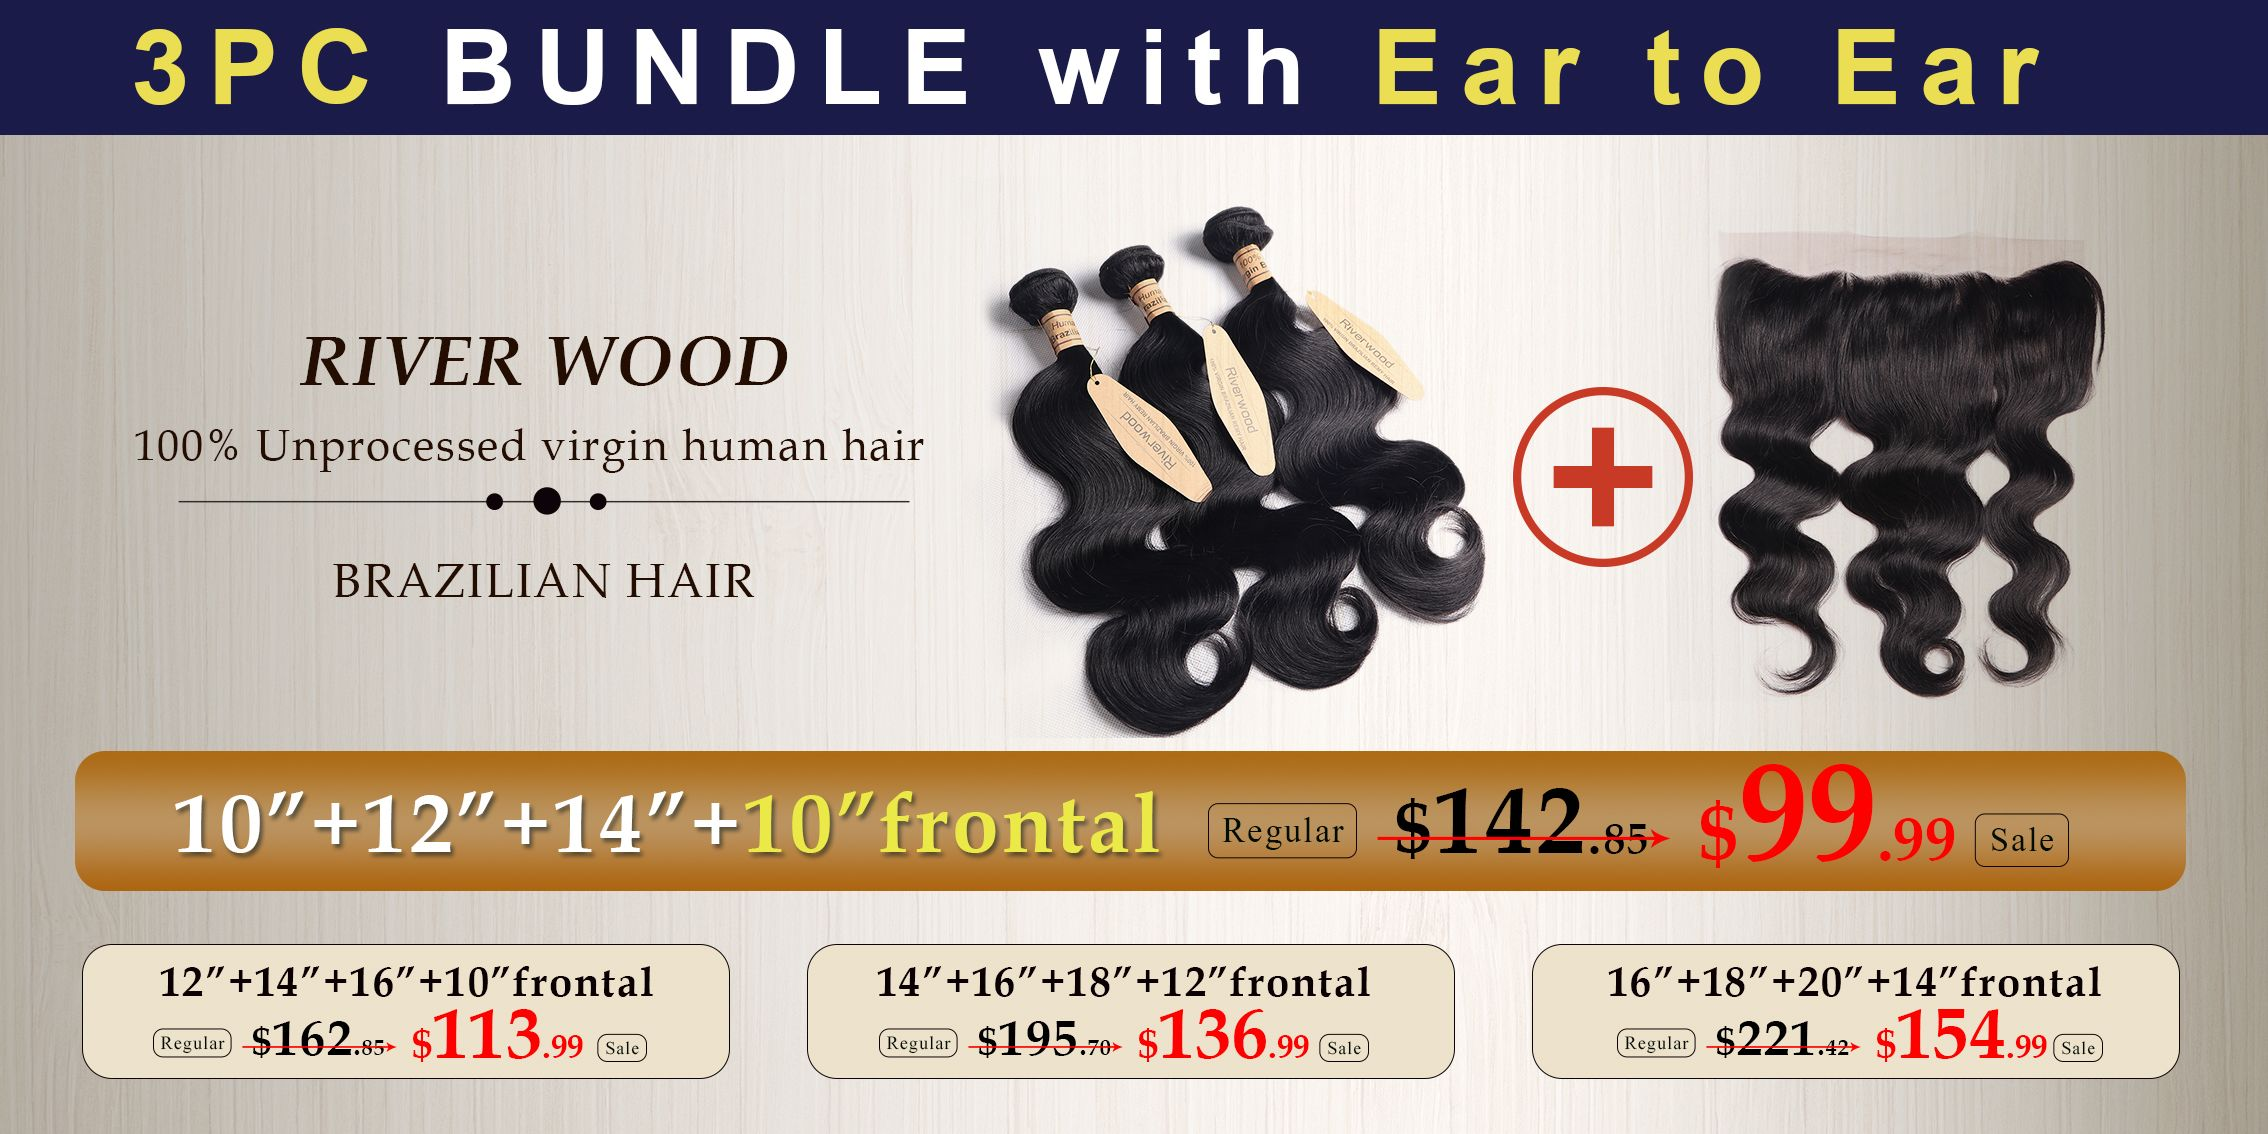 Riverwood Hair Offers 100 Human Hair Extension At A Low Price And